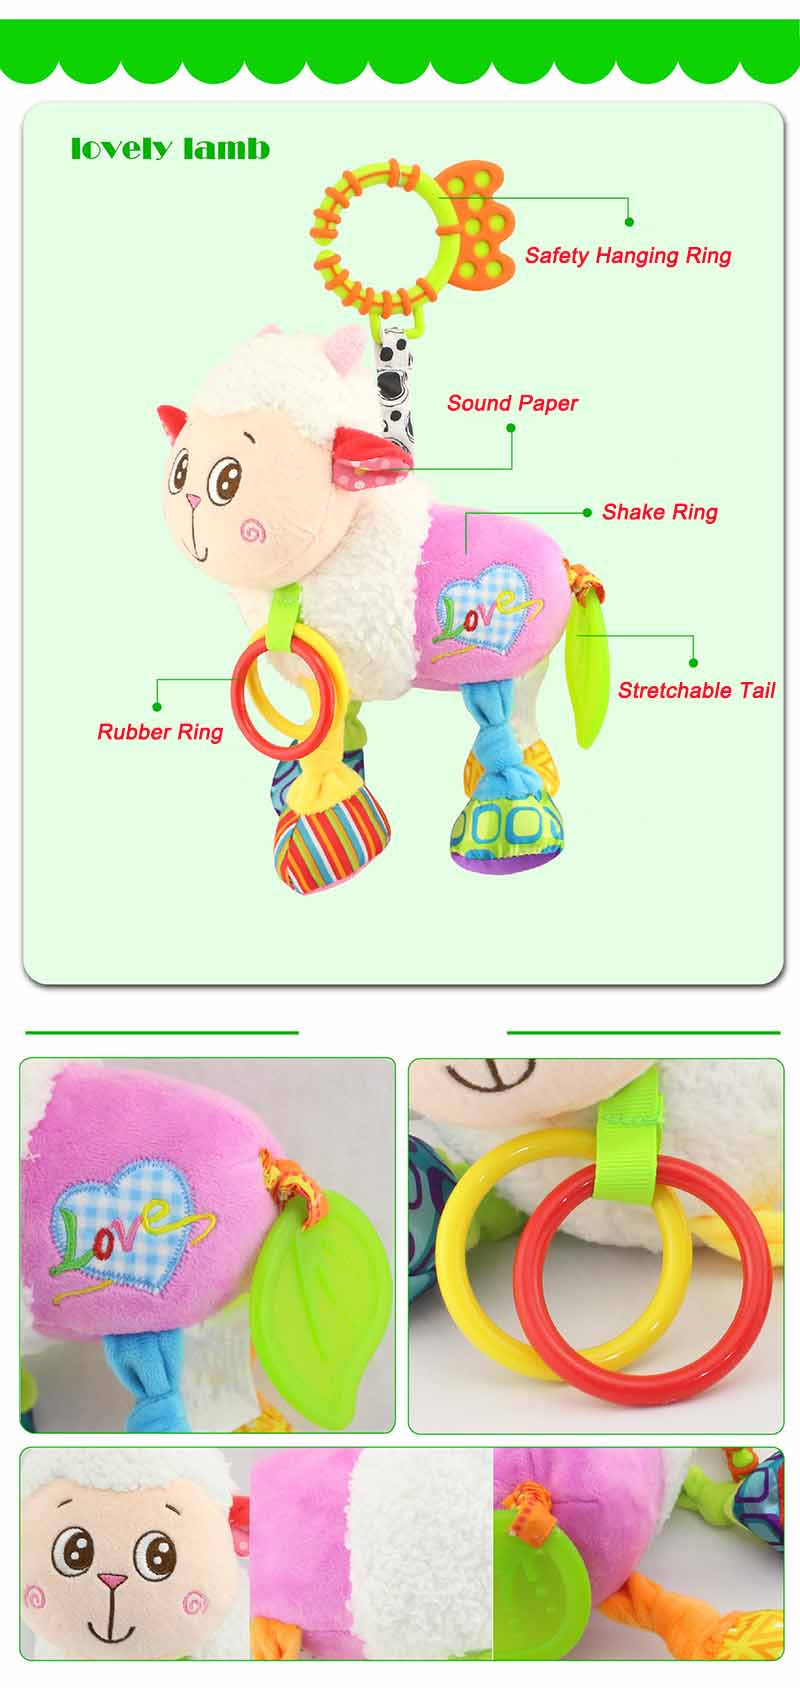 35*22CM Musical Cute Rattles Bed Crib Stroller Kids Stuffed Doll Vibrator Dog Hand Bell Shake RingToy With Teether D012 16